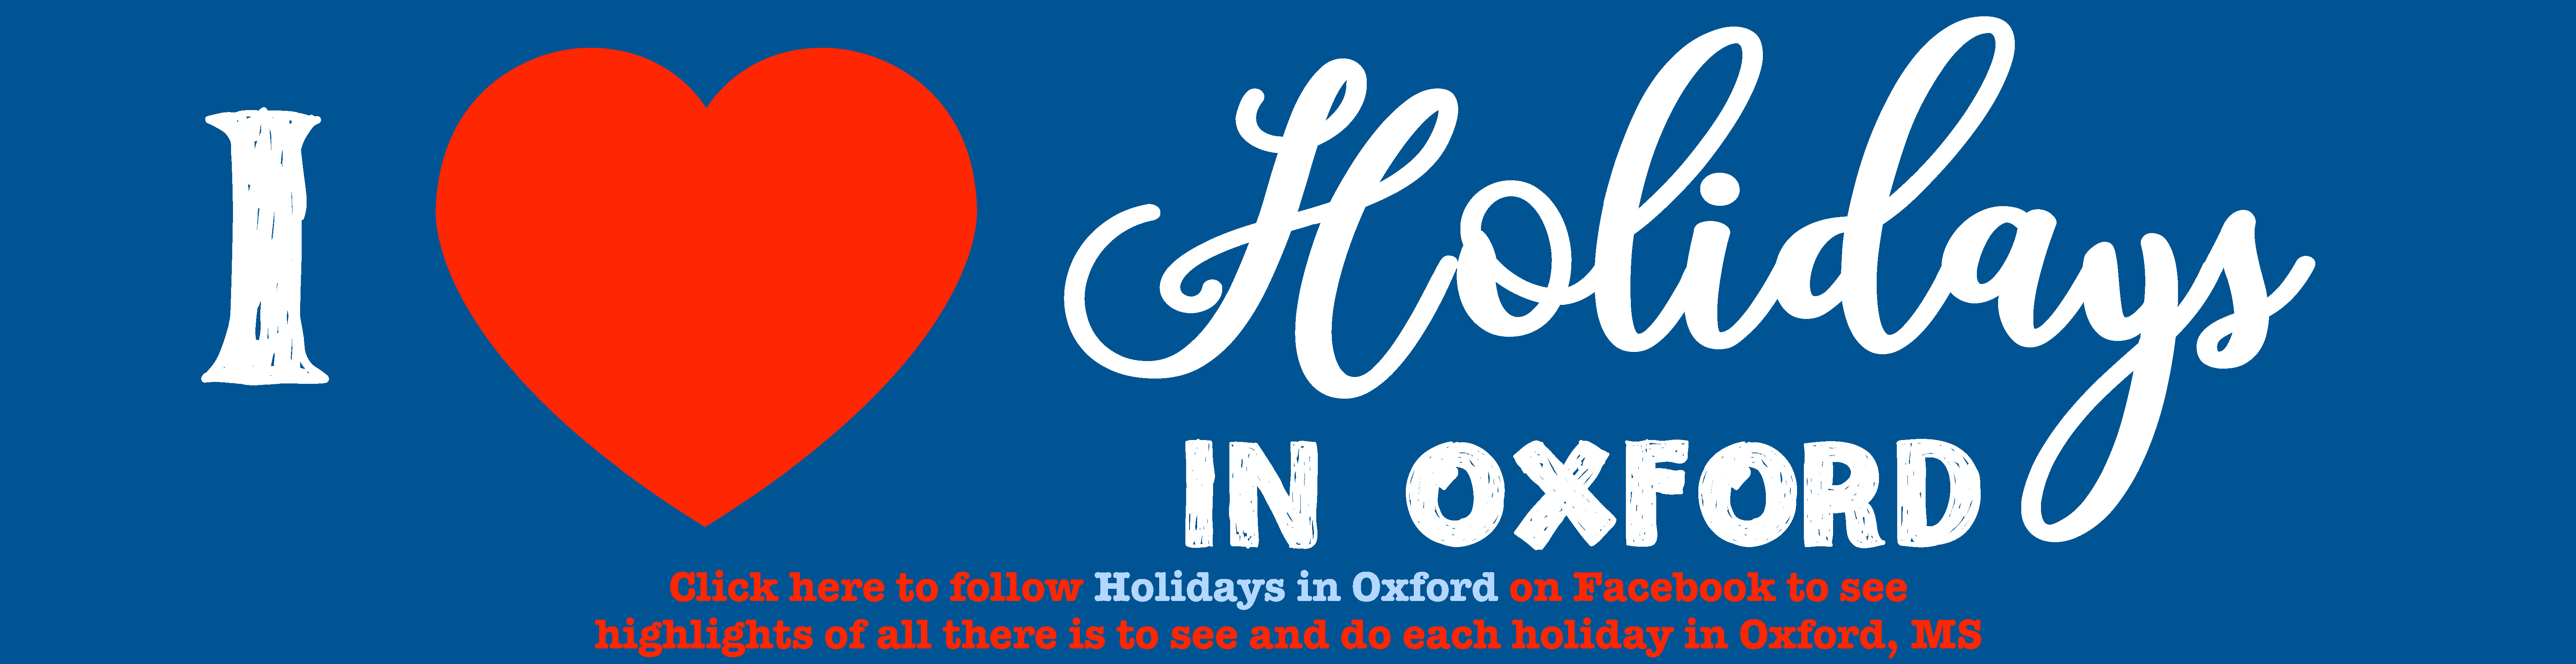 holidays in oxford slider